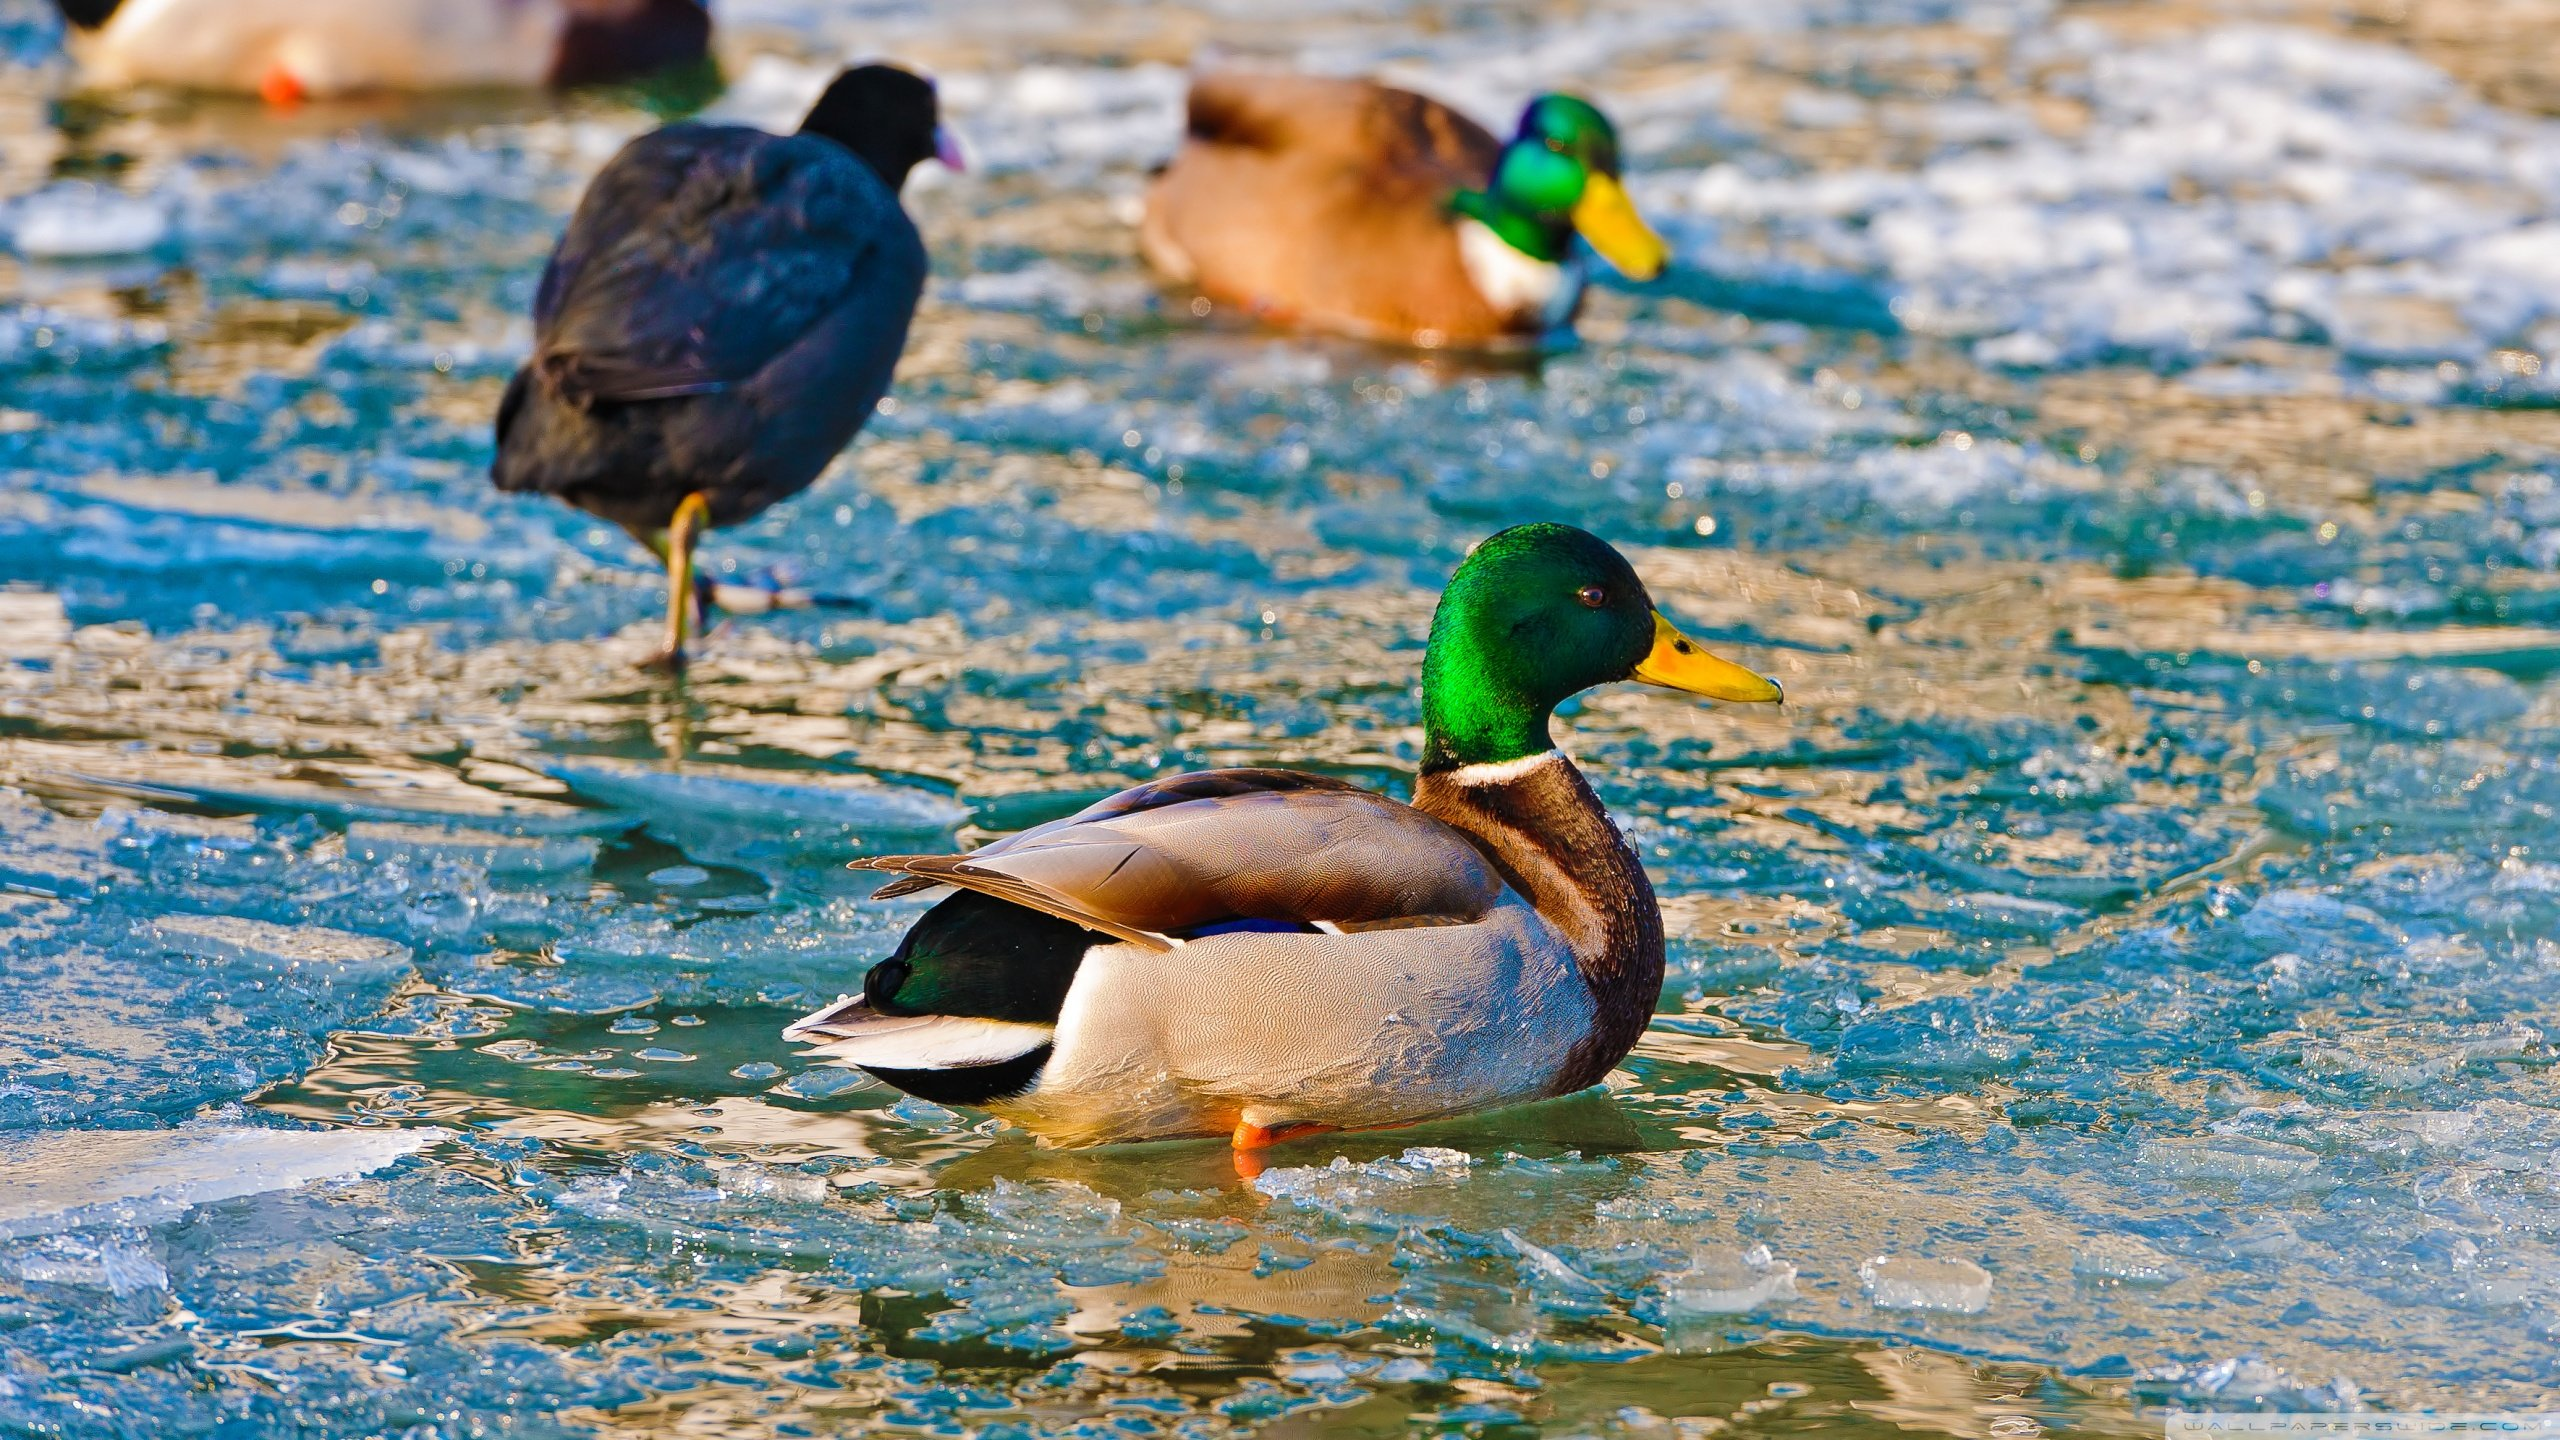 Free Mallard high quality wallpaper ID:358205 for hd 2560x1440 PC